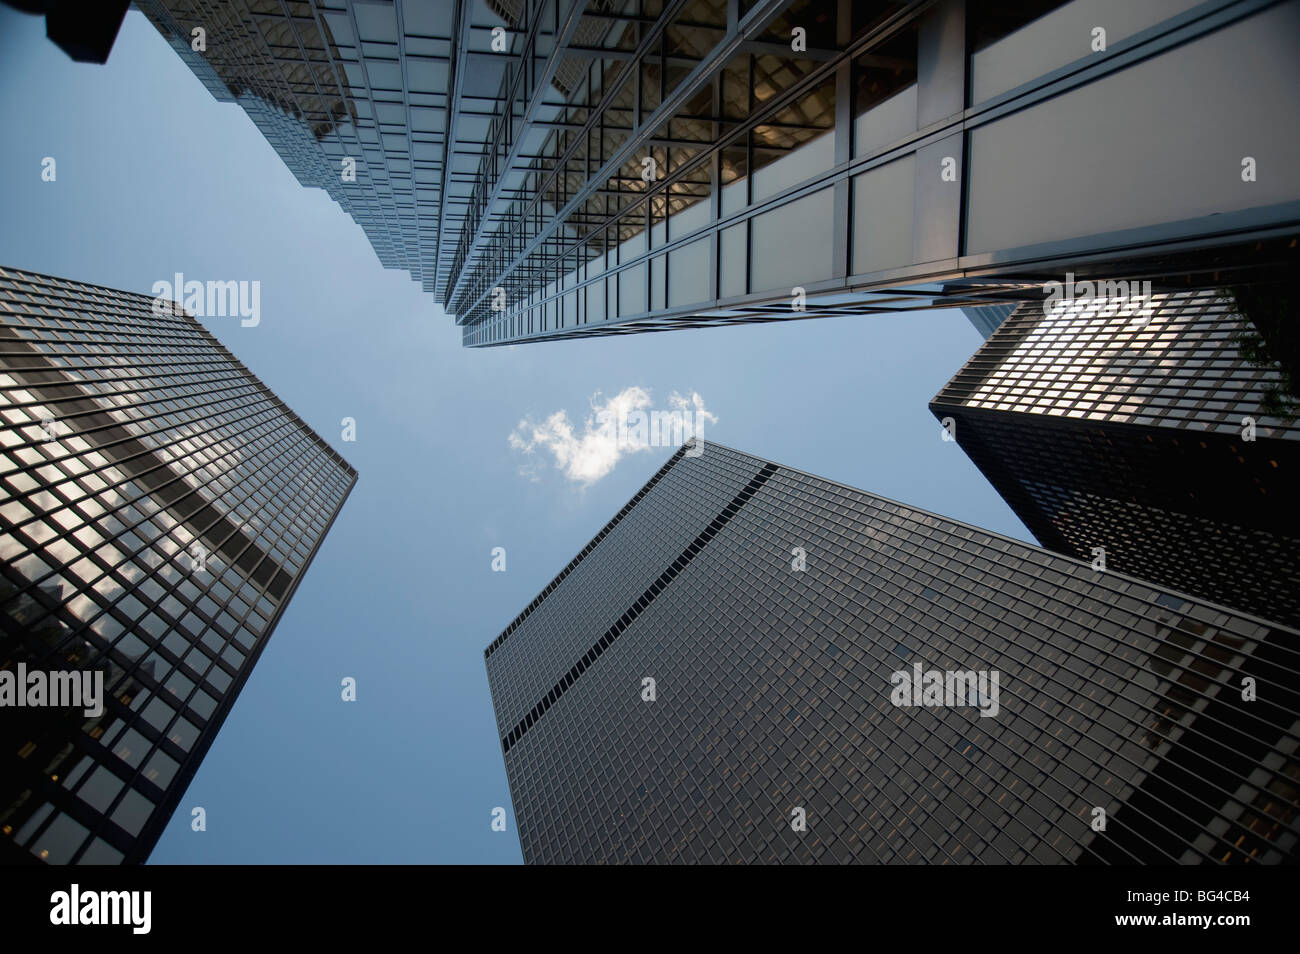 Toronto, Ontario, Canada; View looking up to the top of highrise buildings - Stock Image